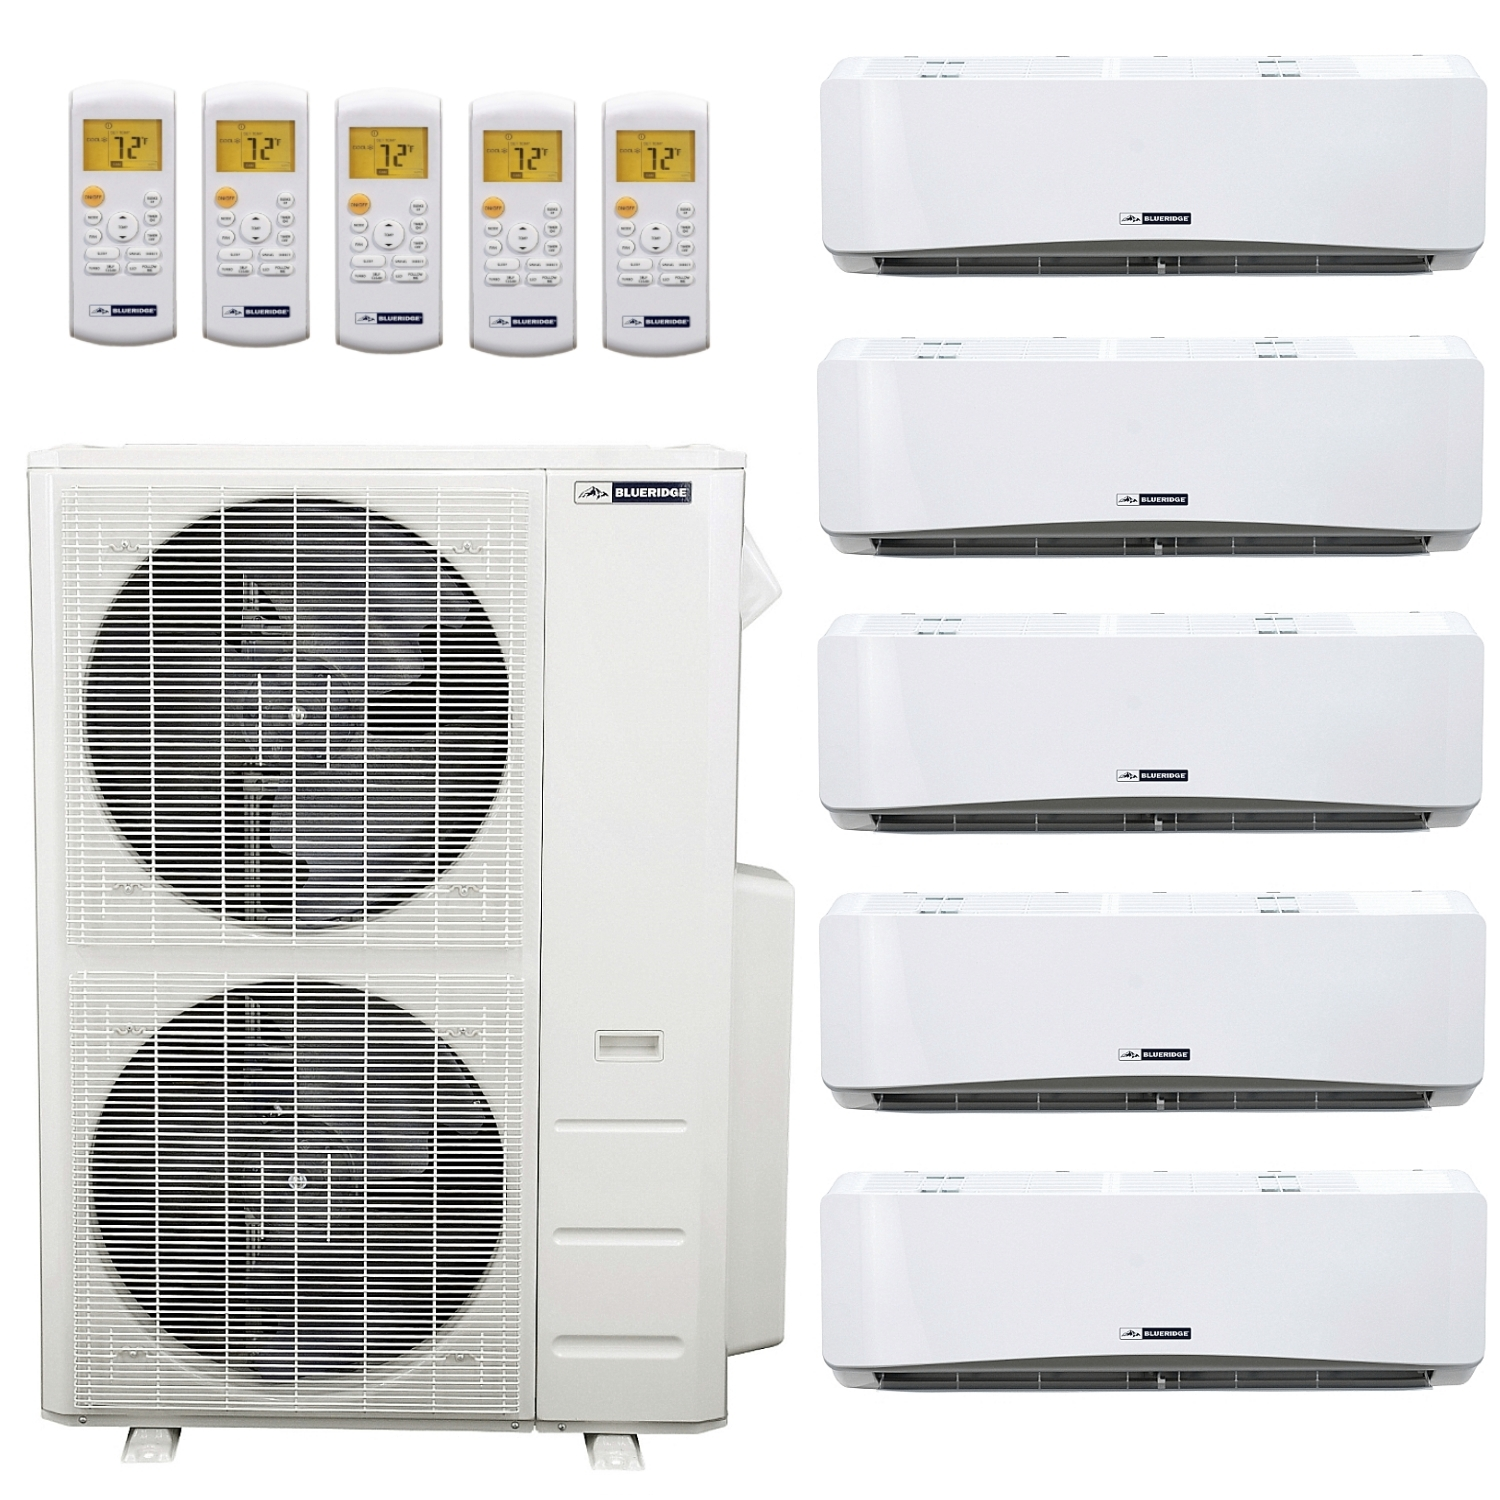 Blueridge 48,000 BTU 21 5 SEER Ductless Mini-Split Five Zone Heat Pump